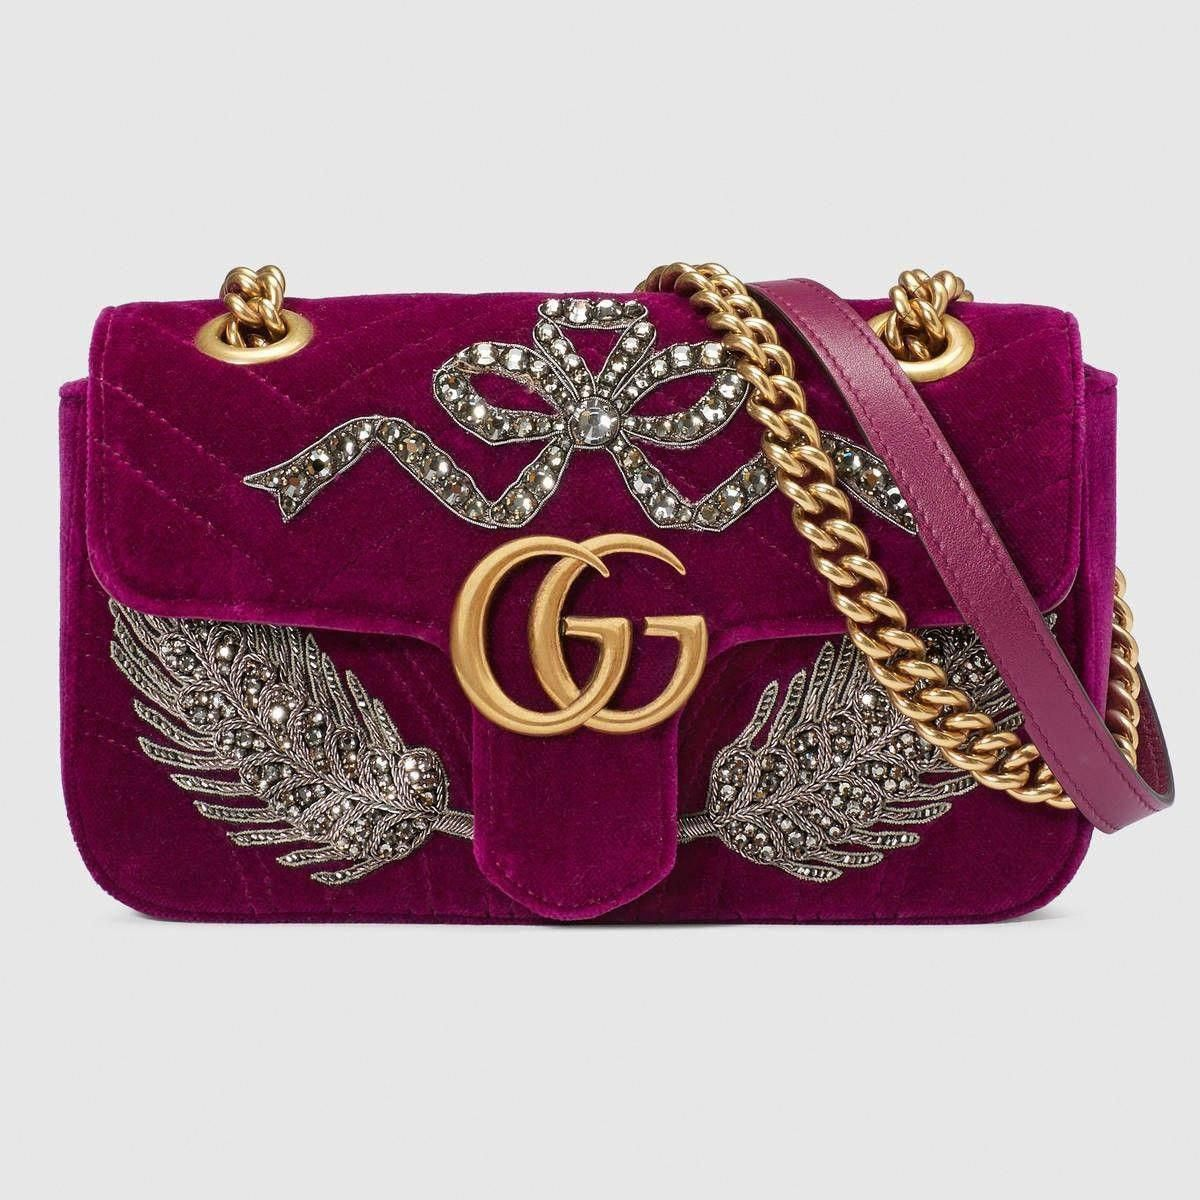 4320e34fd5f5 GUCCI GG Marmont embroidered velvet mini bag - bordeaux chevron velvet. #  gucci #bags #velvet #lining #shoulder bags #crystal #hand bags #silk .